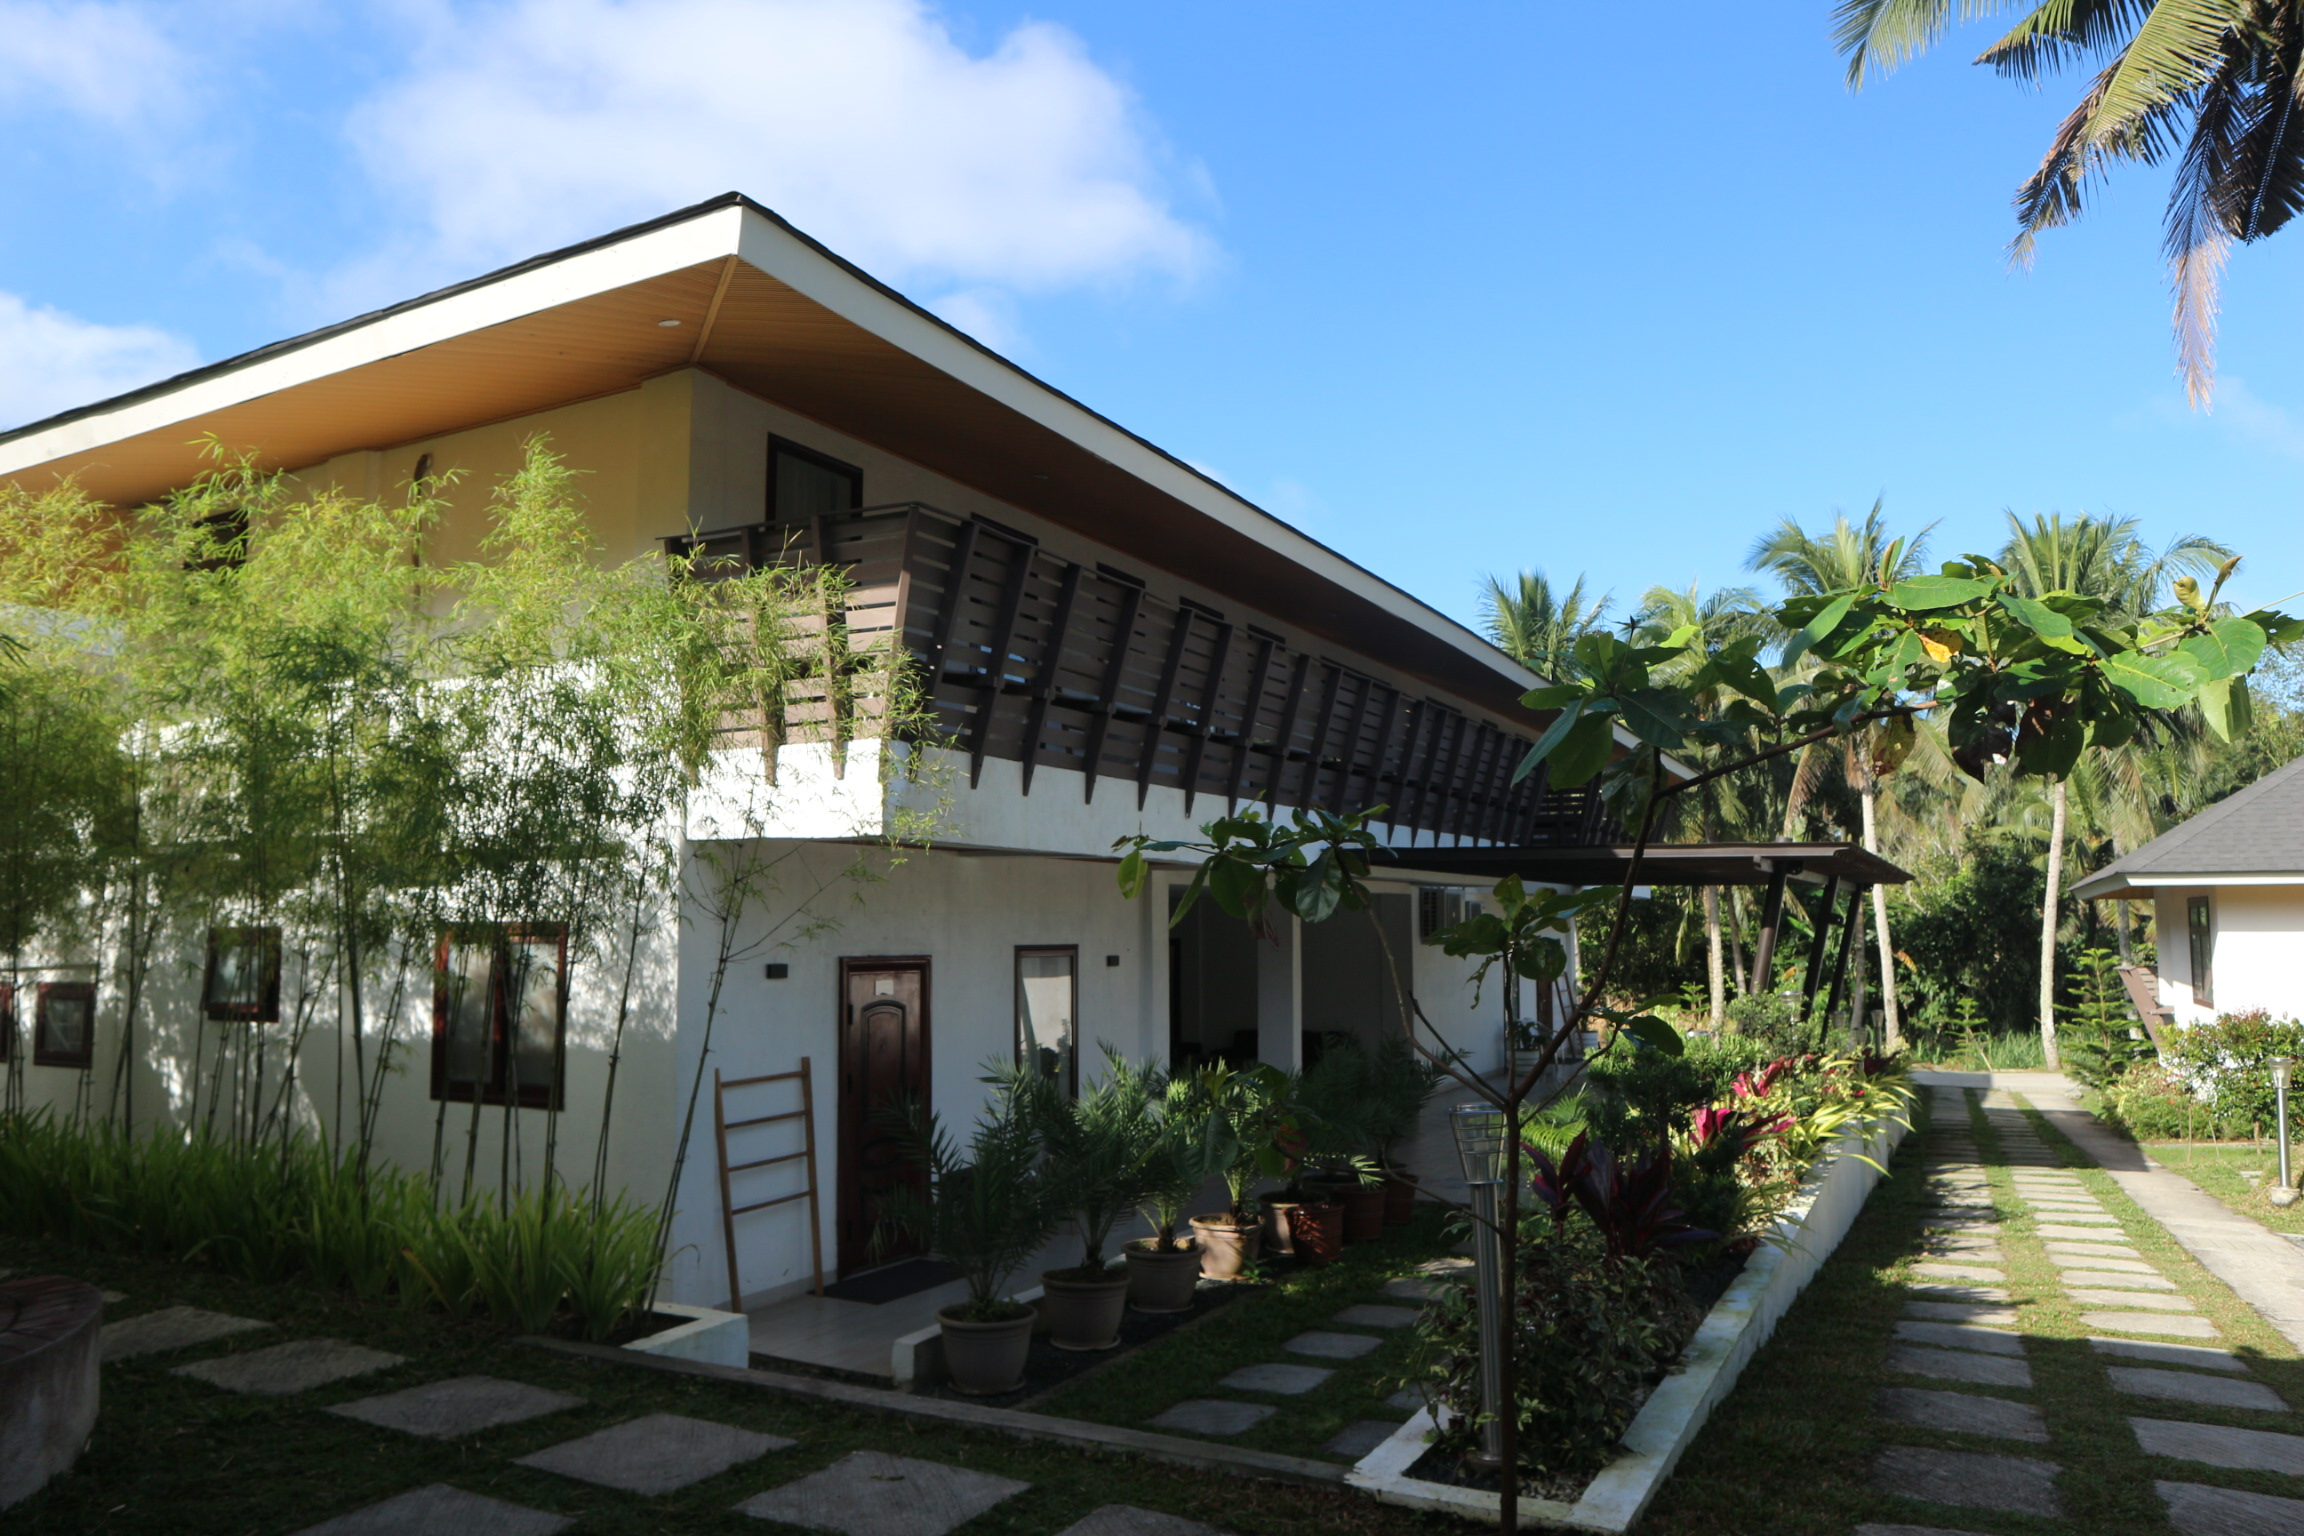 Lucia's Have An Amazing Staycation Experience in Cavite